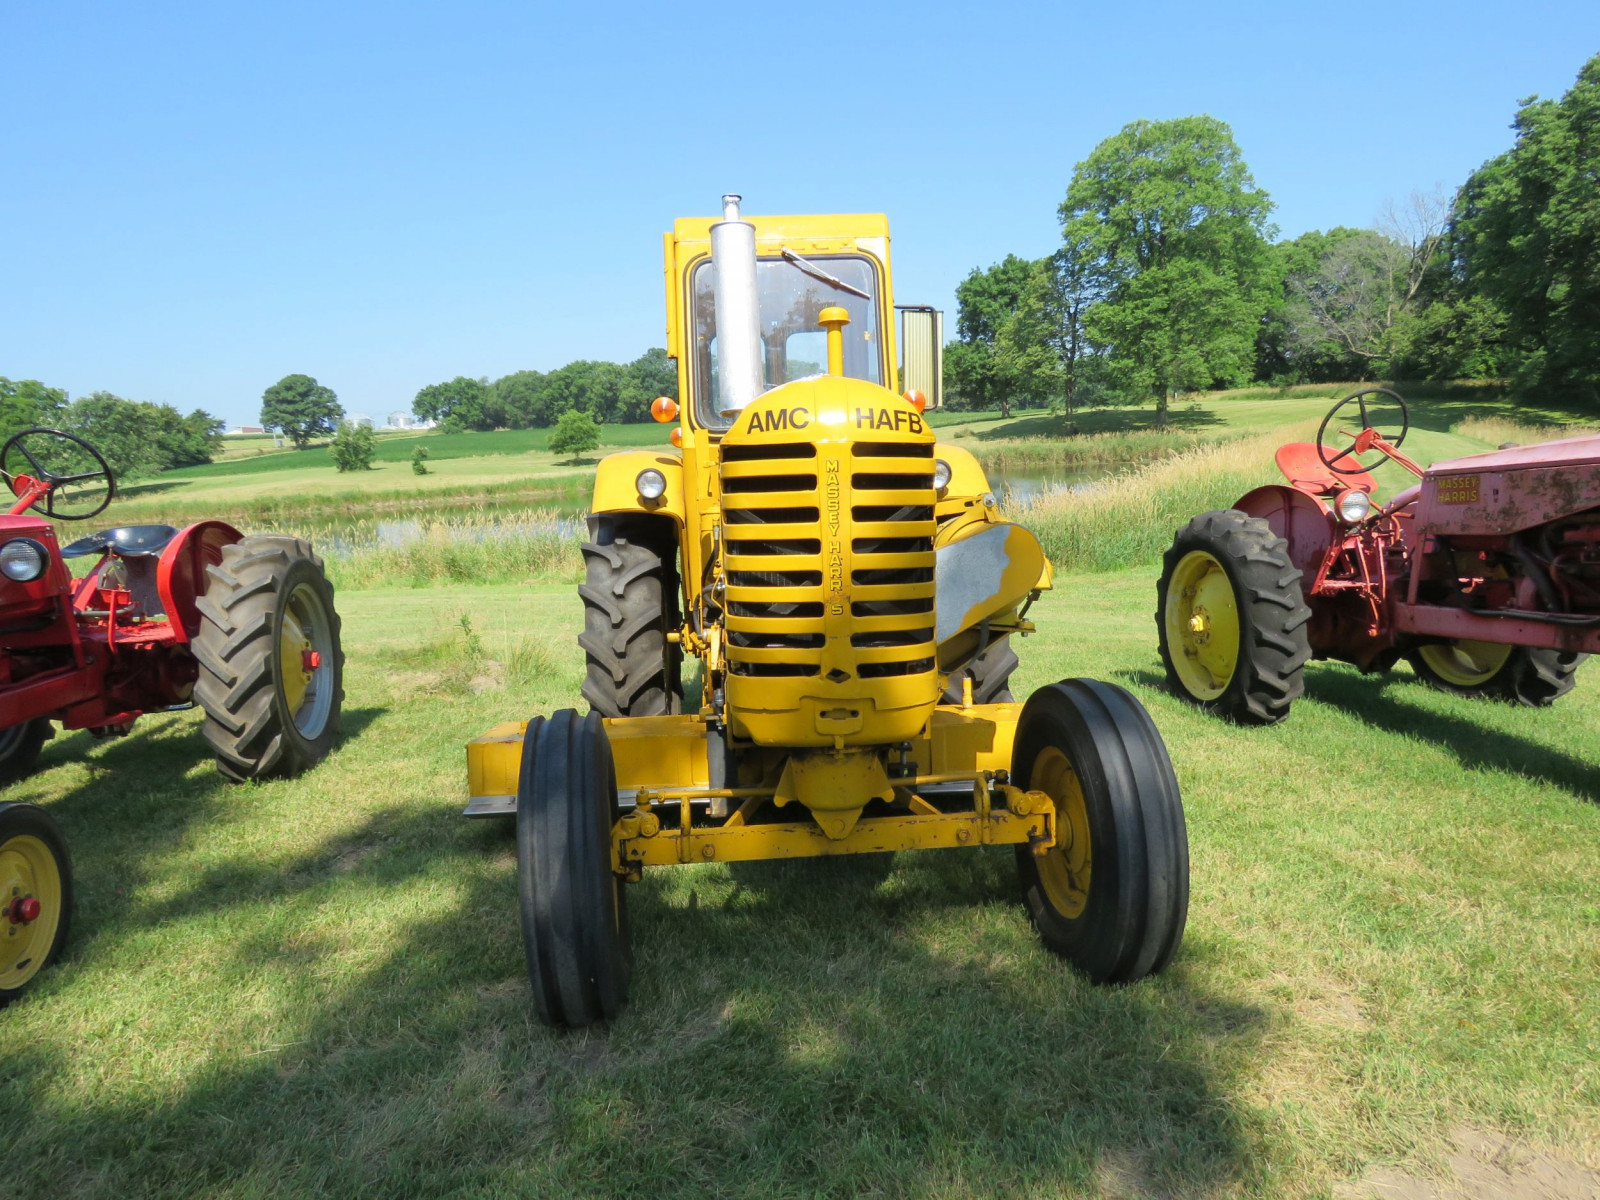 1956 Massey Harris 333 Tractor with Sabre Magnetic Sweeper - Image 2